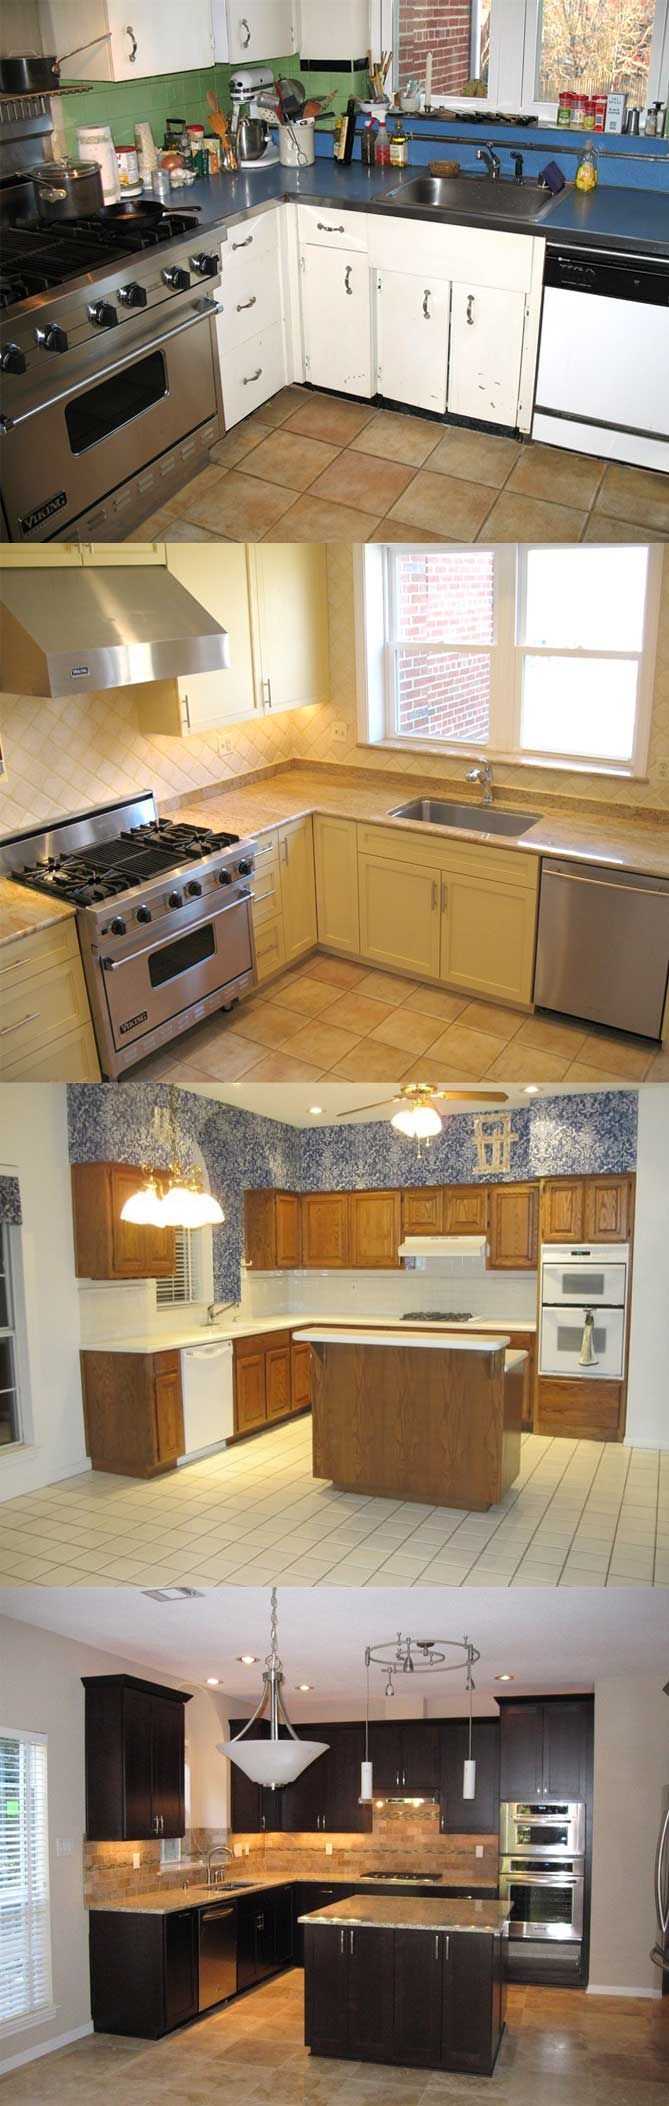 47 best paint images on pinterest blue rooms colors and for Diy luxury kitchens